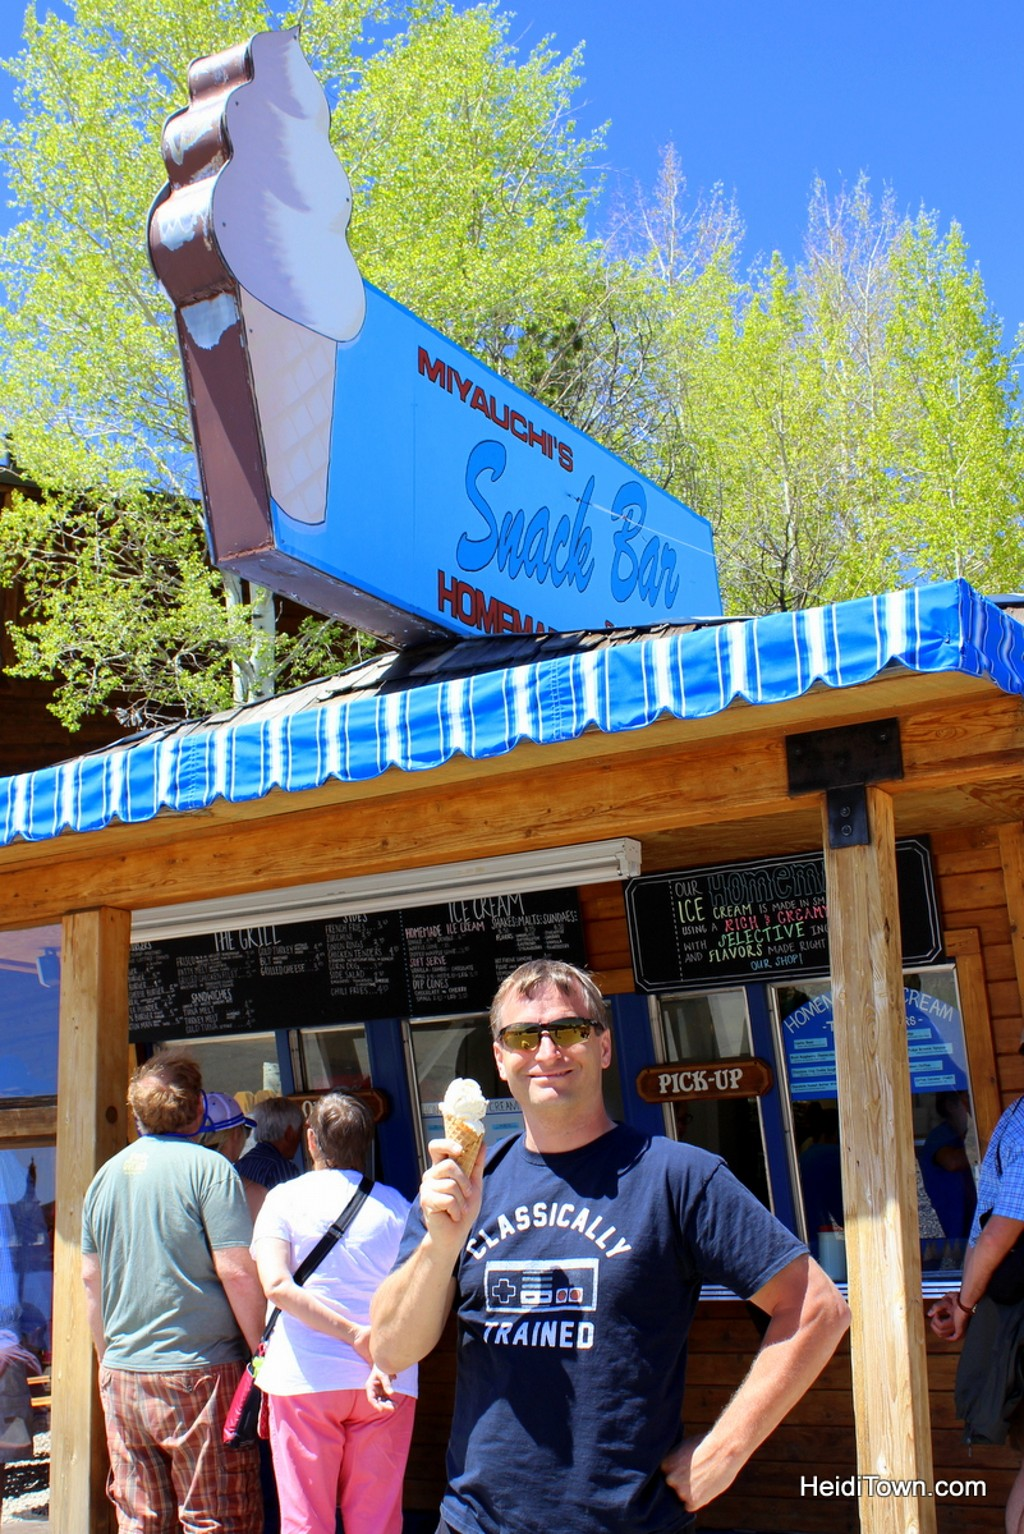 The perfect day in Grand Lake. Ice cream at Miyauchi's Snack Bar. HeidiTown.com